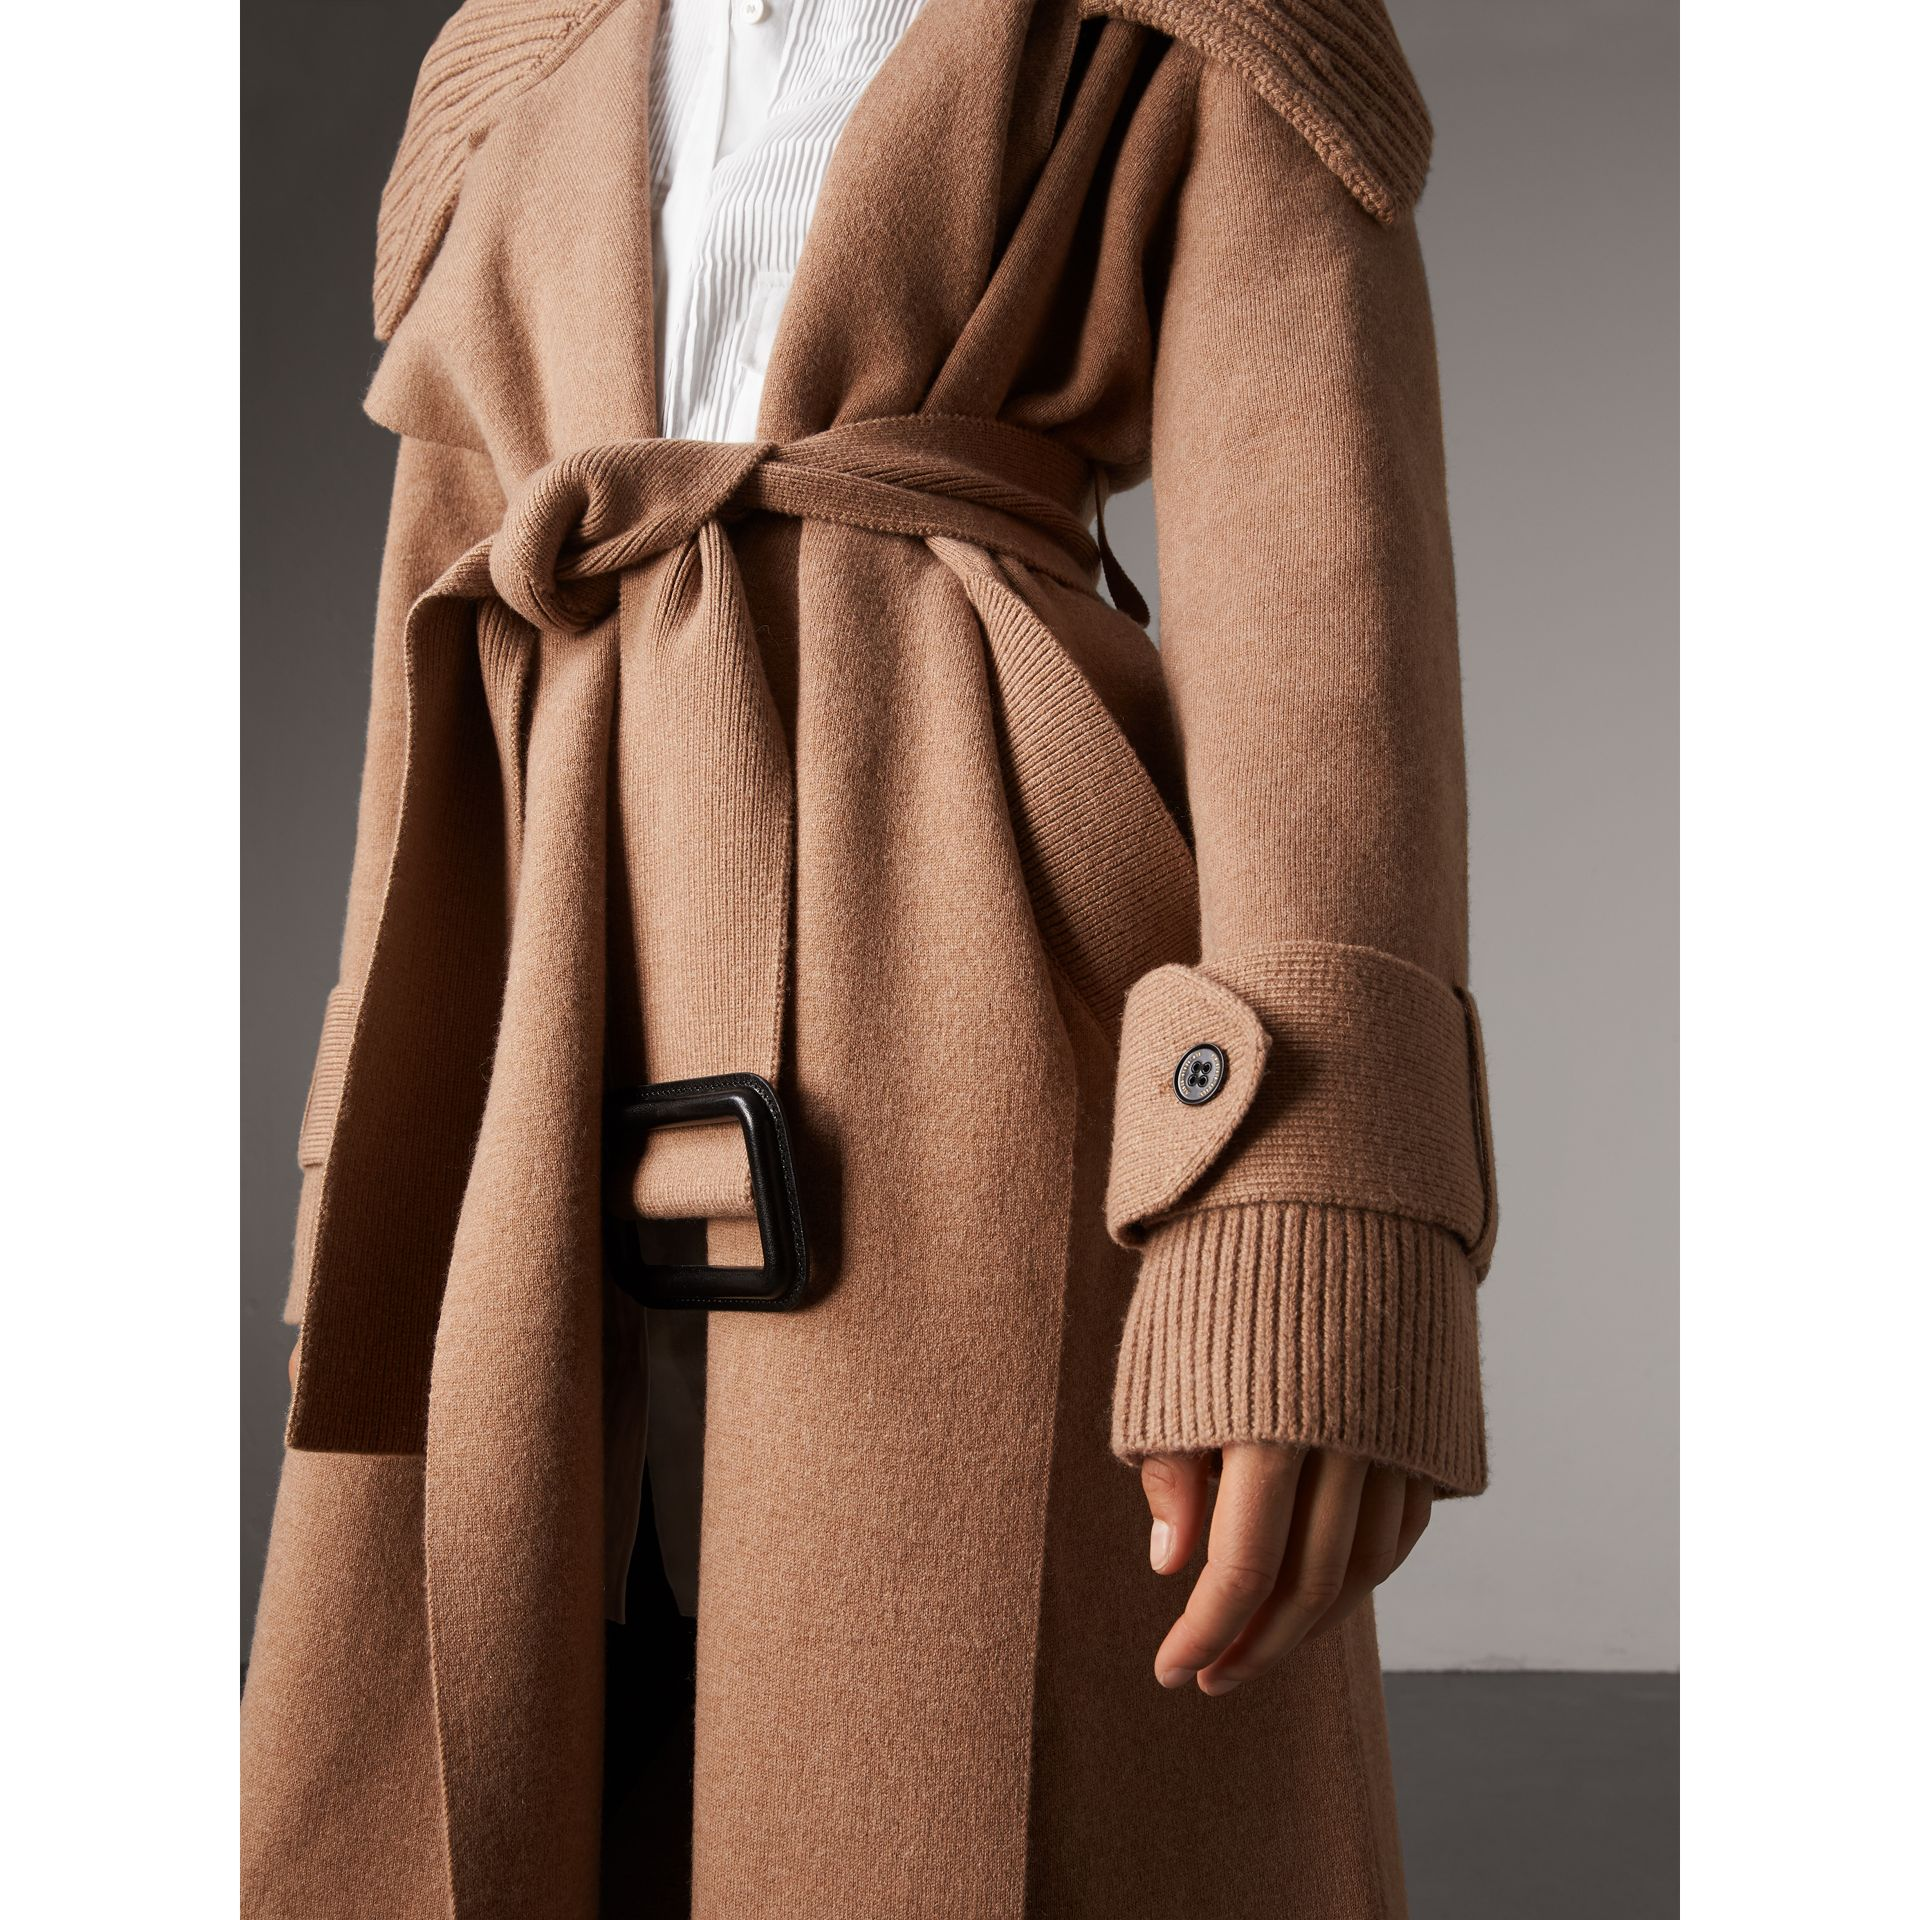 Knitted Wool Cashmere Wrap Coat in Camel - Women | Burberry - gallery image 1